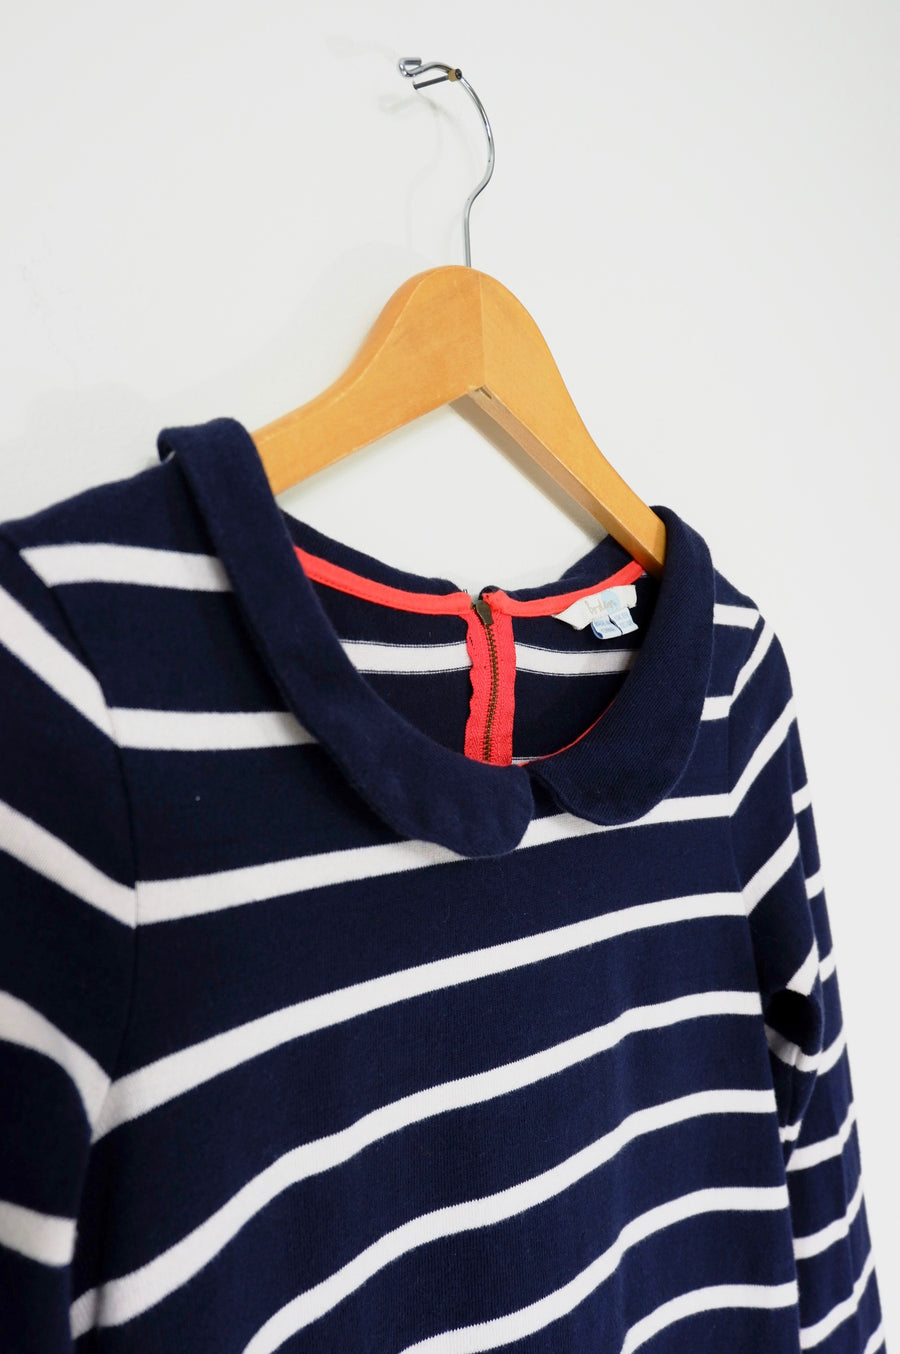 Boden Peter Pan Collar Knit Tunic Dress (4)